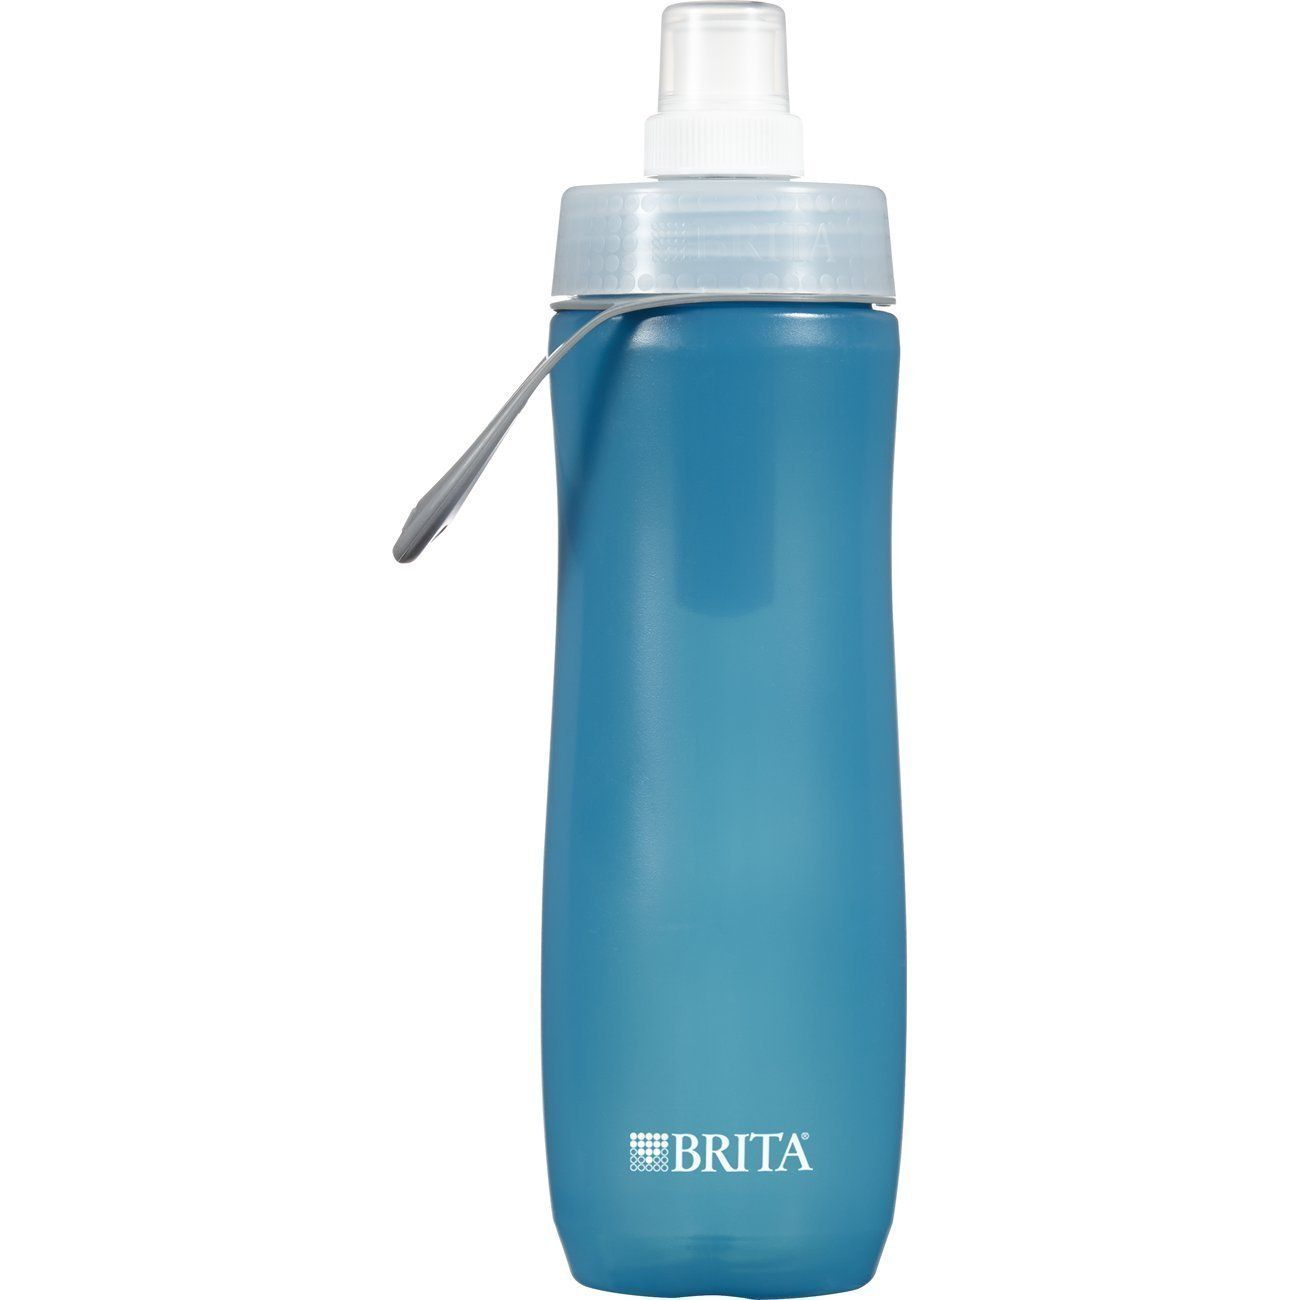 7 Of The HighestRated Water Bottles With Filters On Amazon HuffPost